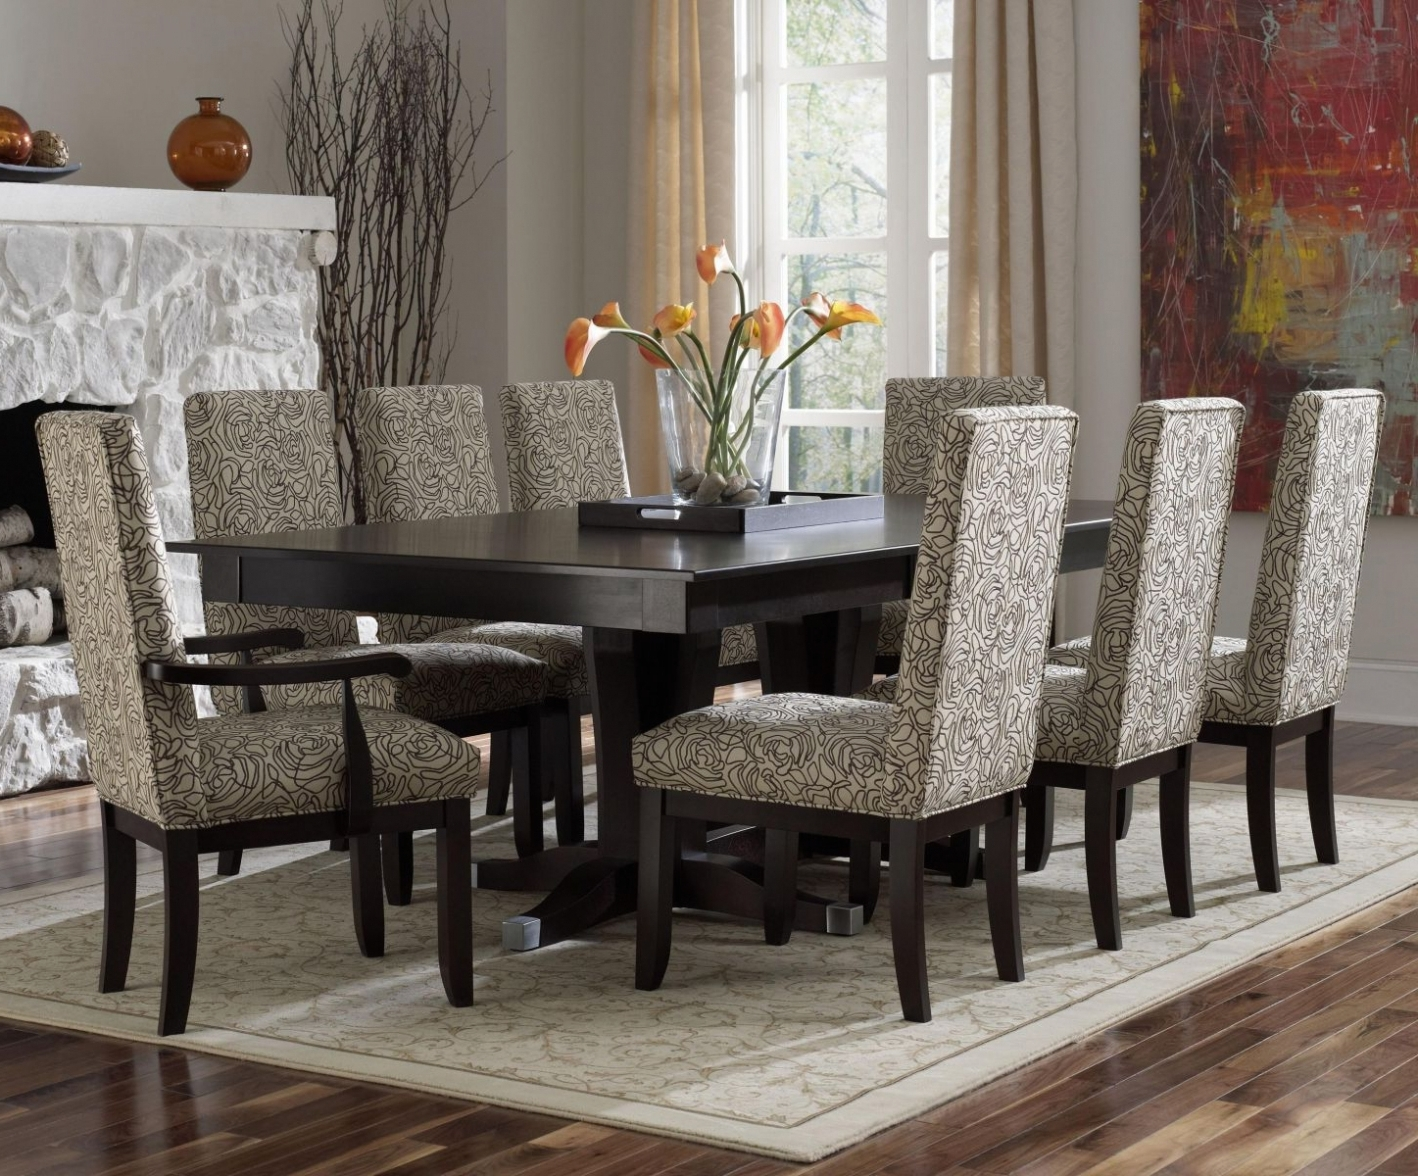 Glasgow Dining Sets Throughout Well Known Furnitures: Dining Room Furniture : Dining Room Sets Dining Sets (Gallery 5 of 25)